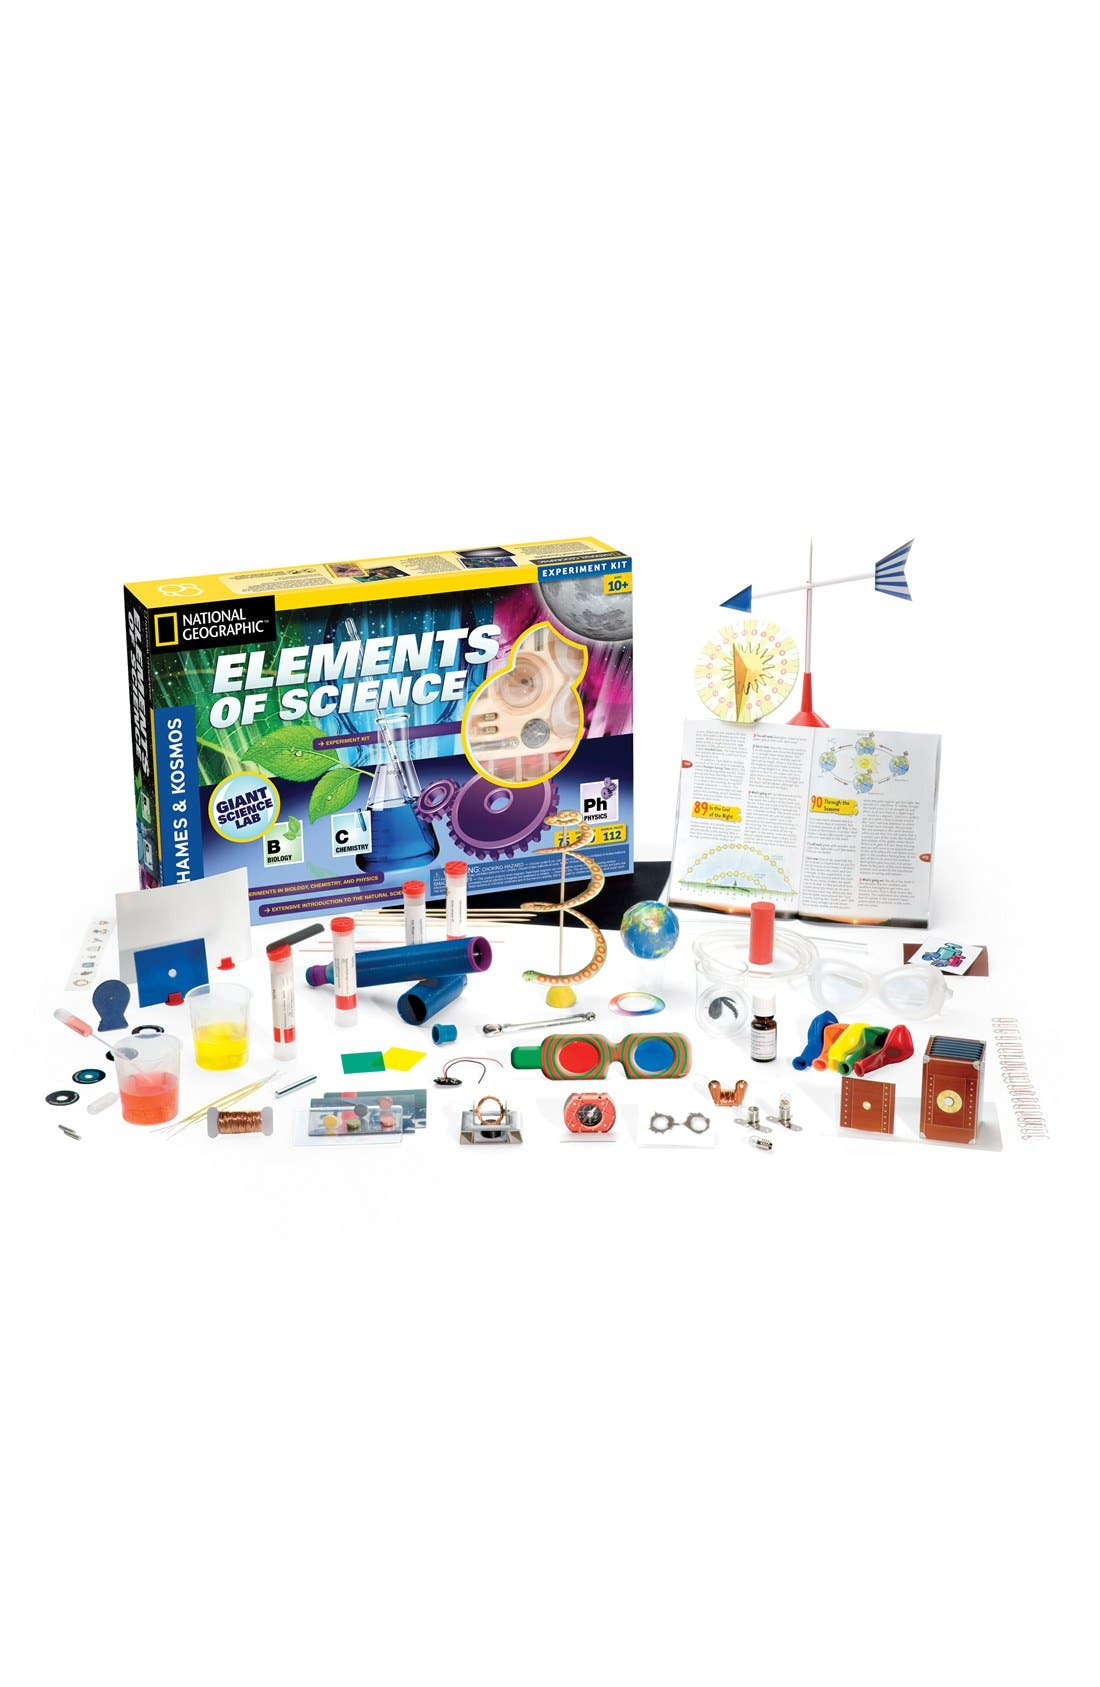 'Elements of Science' Experiment Kit,                             Main thumbnail 1, color,                             NO COLOR